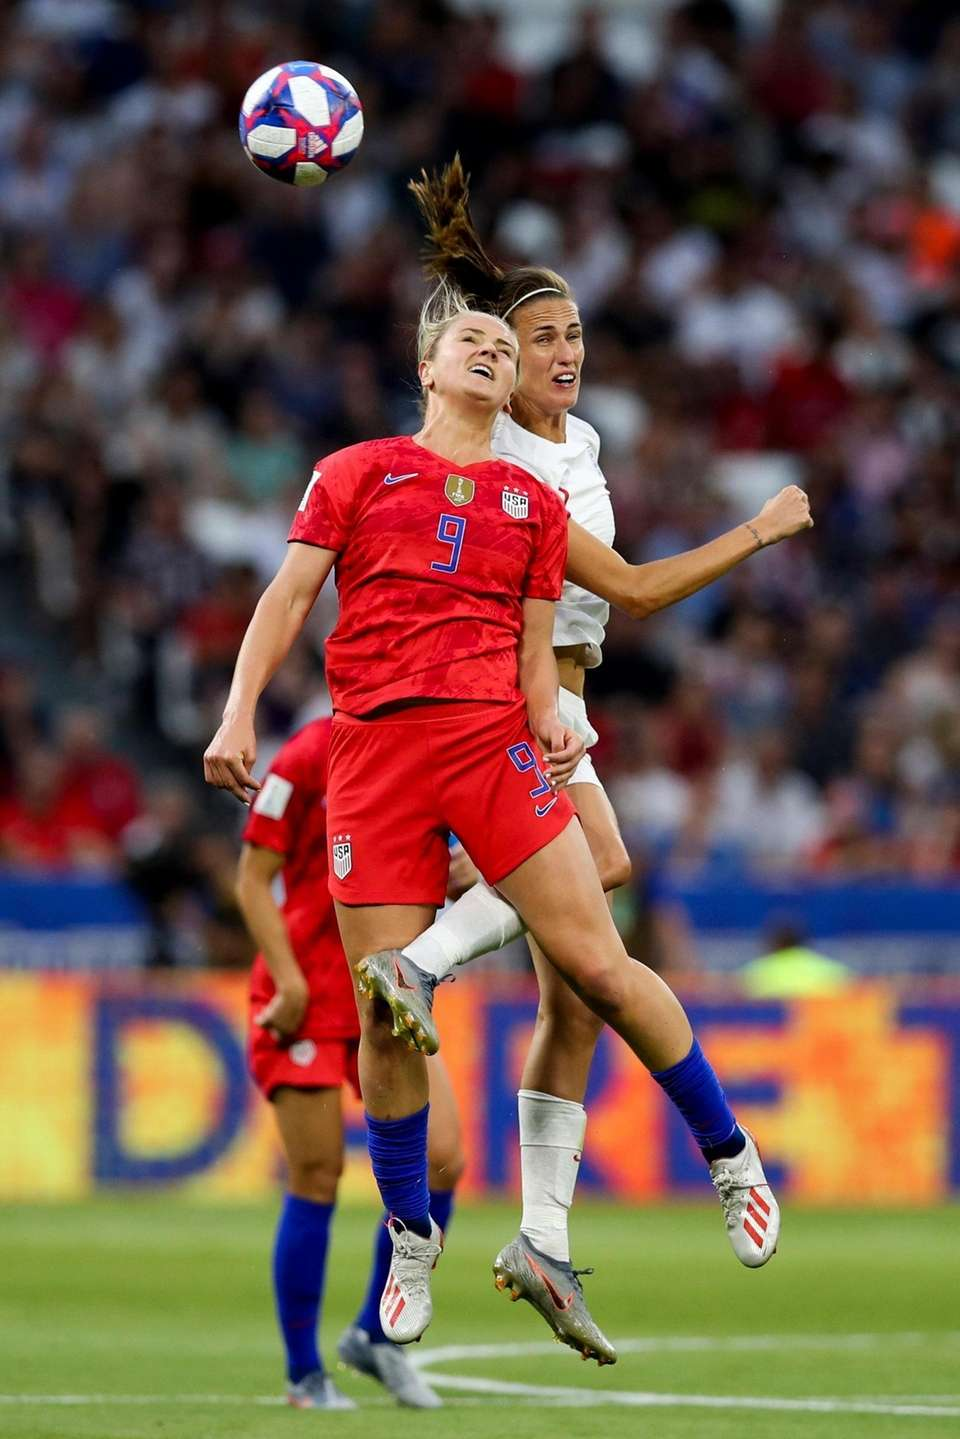 The United States' Lindsey Horan, foreground, jumps for